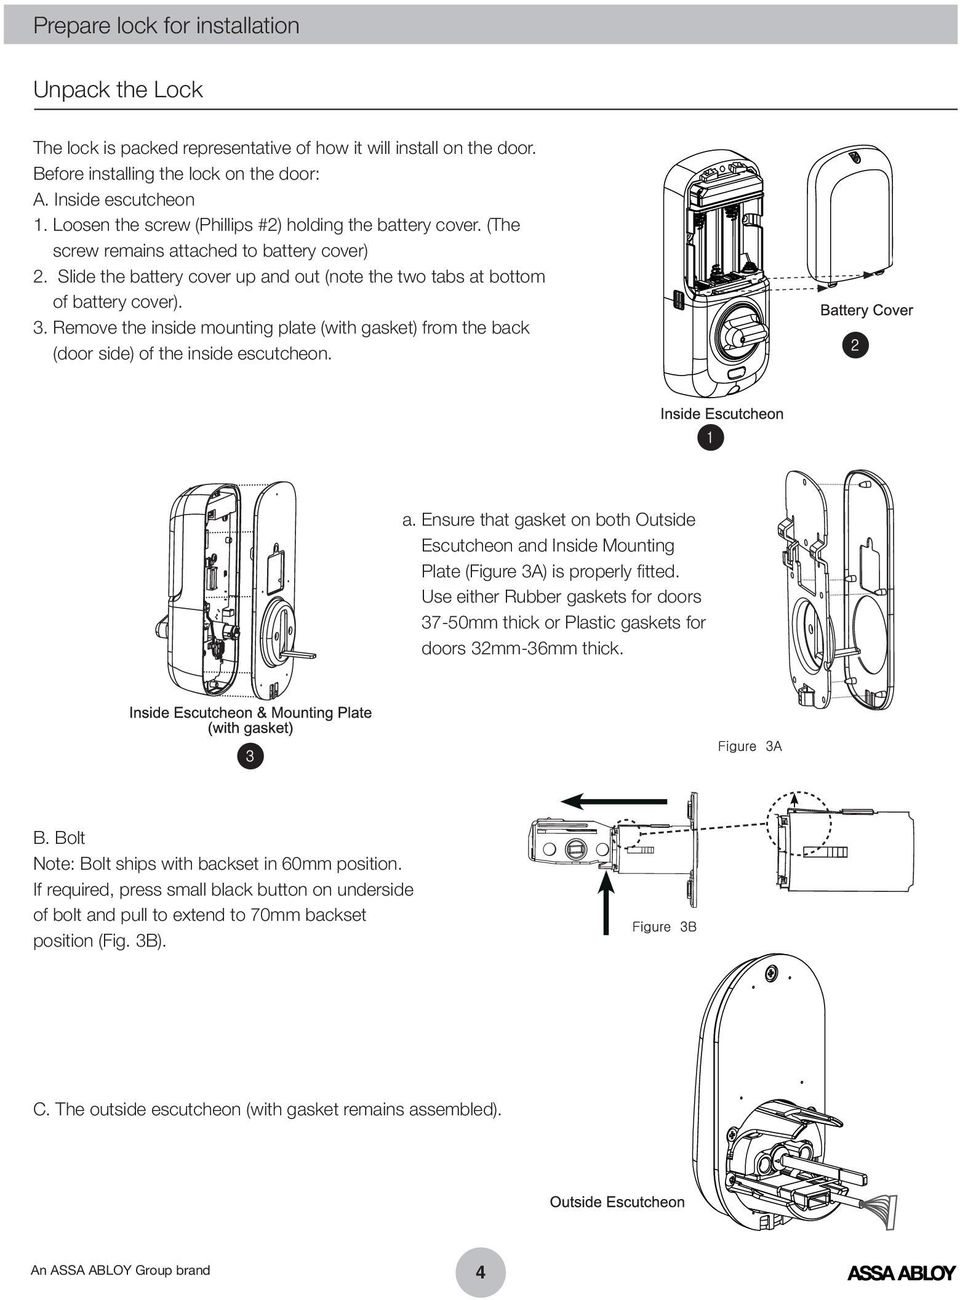 Remove the inside mounting plate (with gasket) from the back (door side) of the inside escutcheon. a.